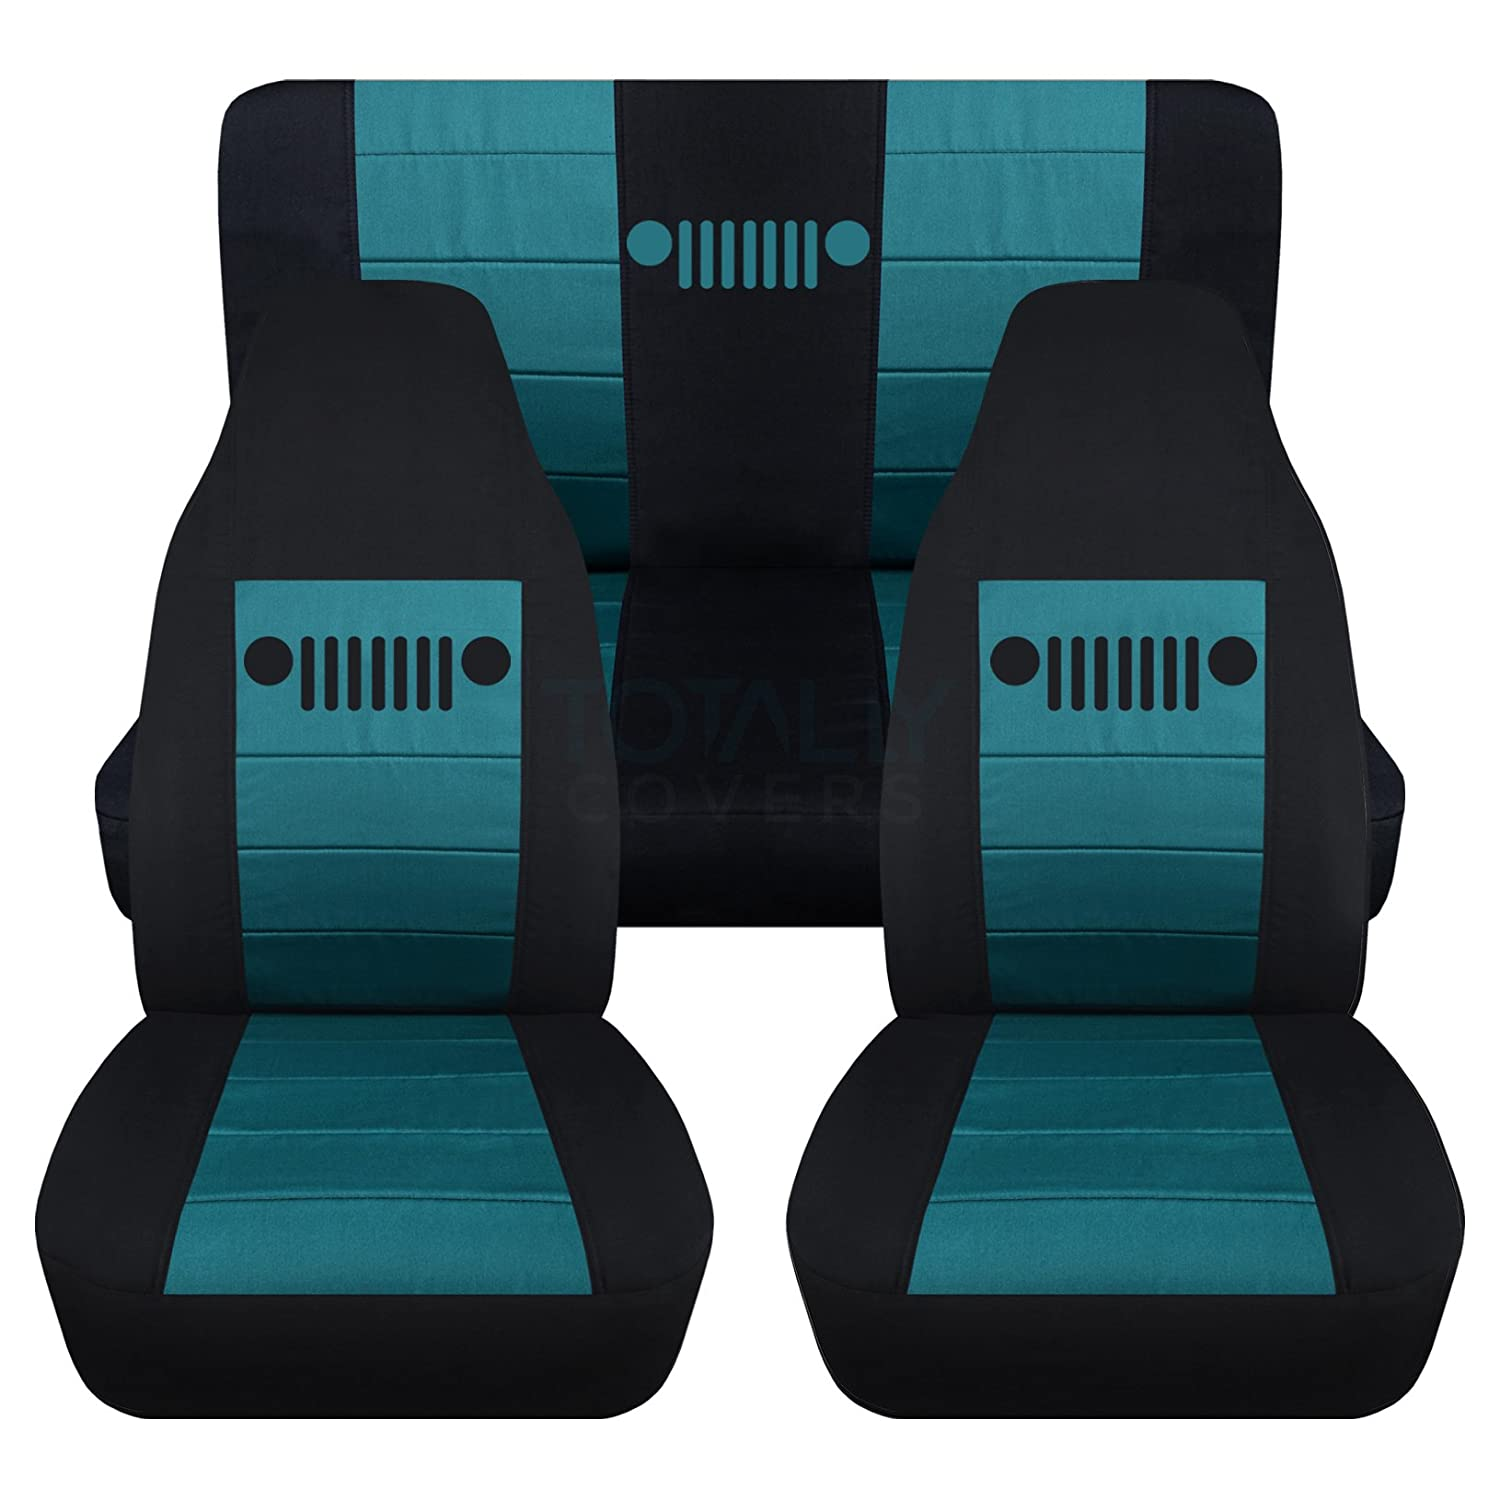 1987-1995 Jeep Wrangler YJ Seat Covers: Black & Orange - Full Set: Front & Rear (23 Colors) 1988 1989 1990 1991 1992 1993 1994 2-Door Complete Back Bench Designcovers